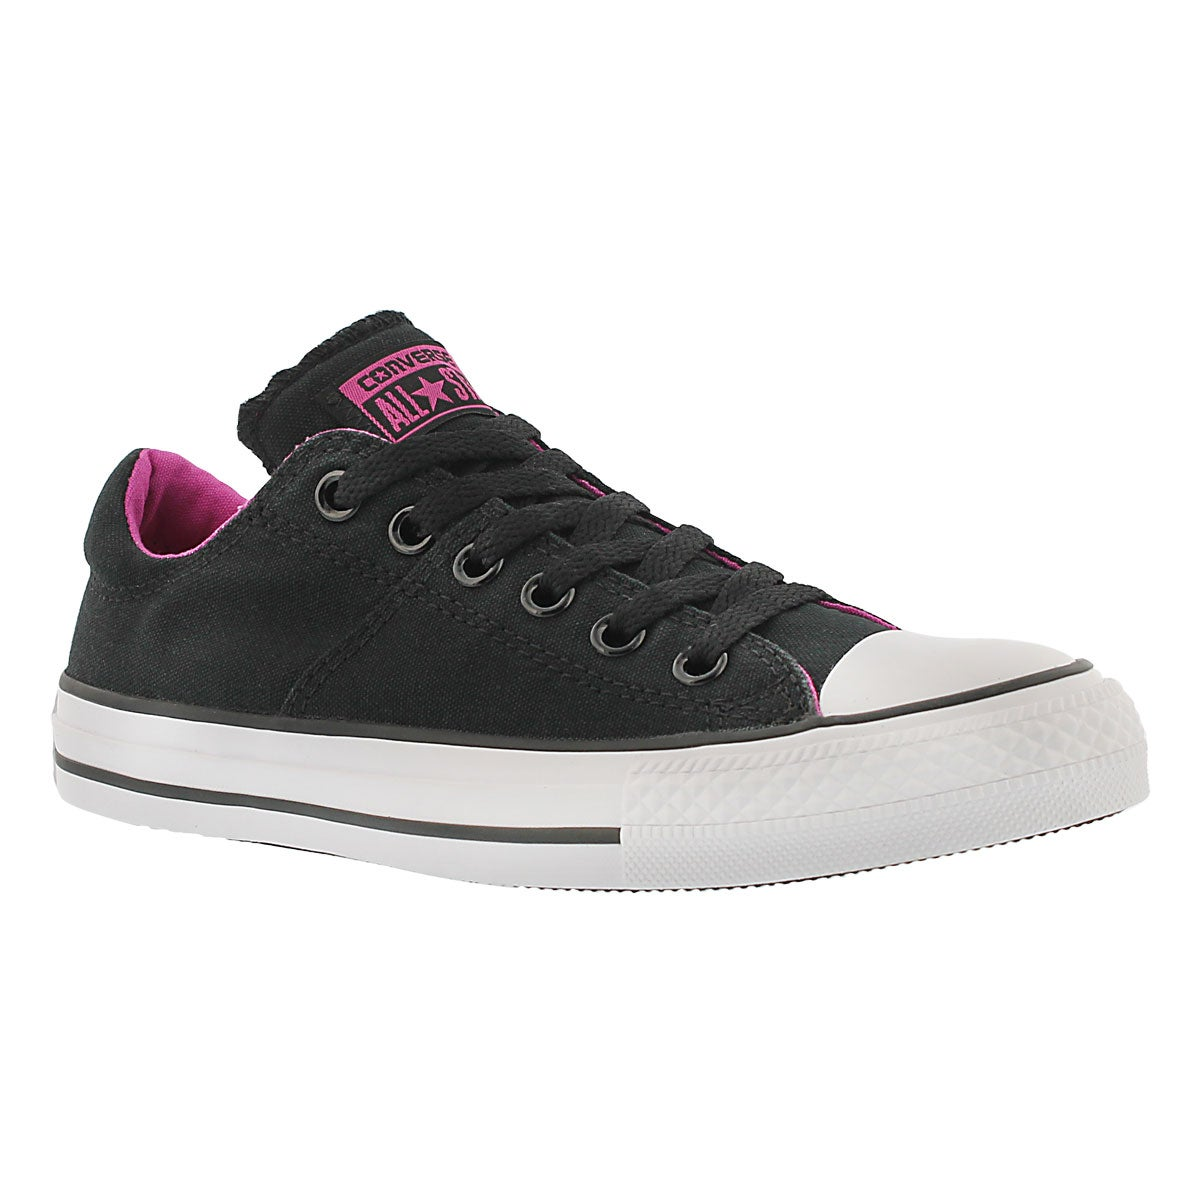 Lds CT A/S Madison blk/pink ox